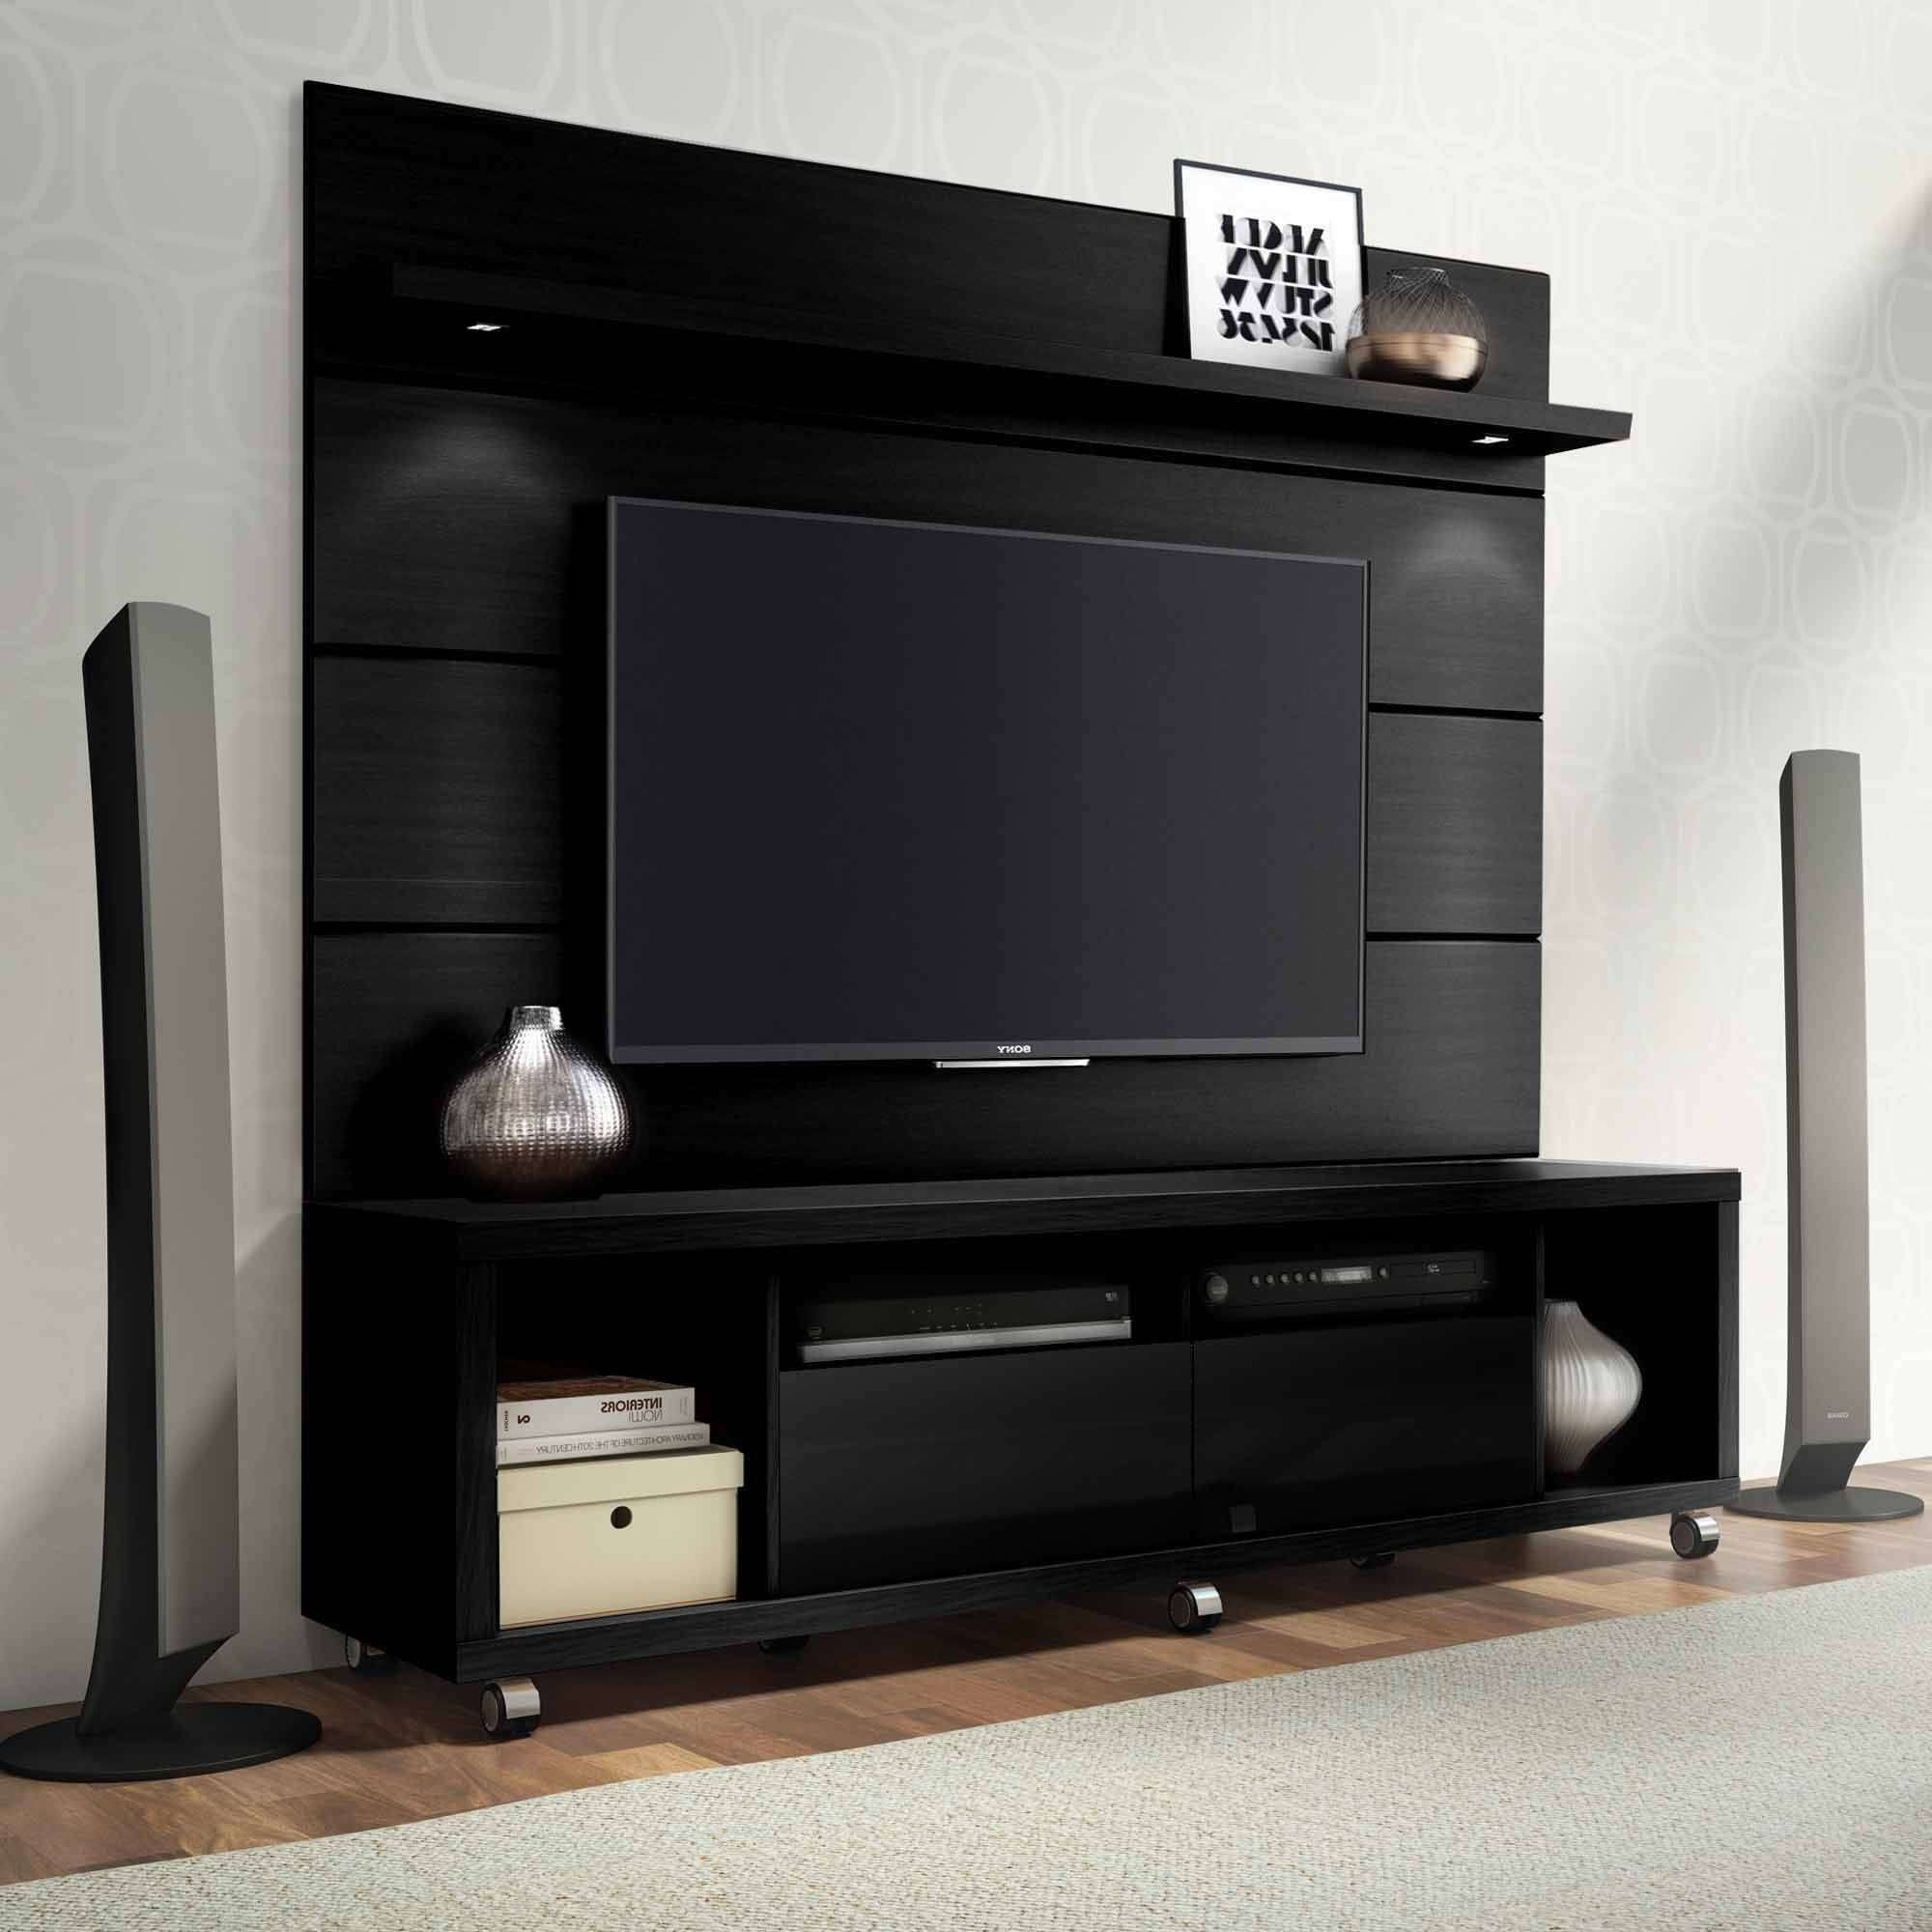 Manhattan Comfort Cabrini Tv Stand And Floating Wall Tv Panel With For Tv Stands With Led Lights (View 13 of 15)